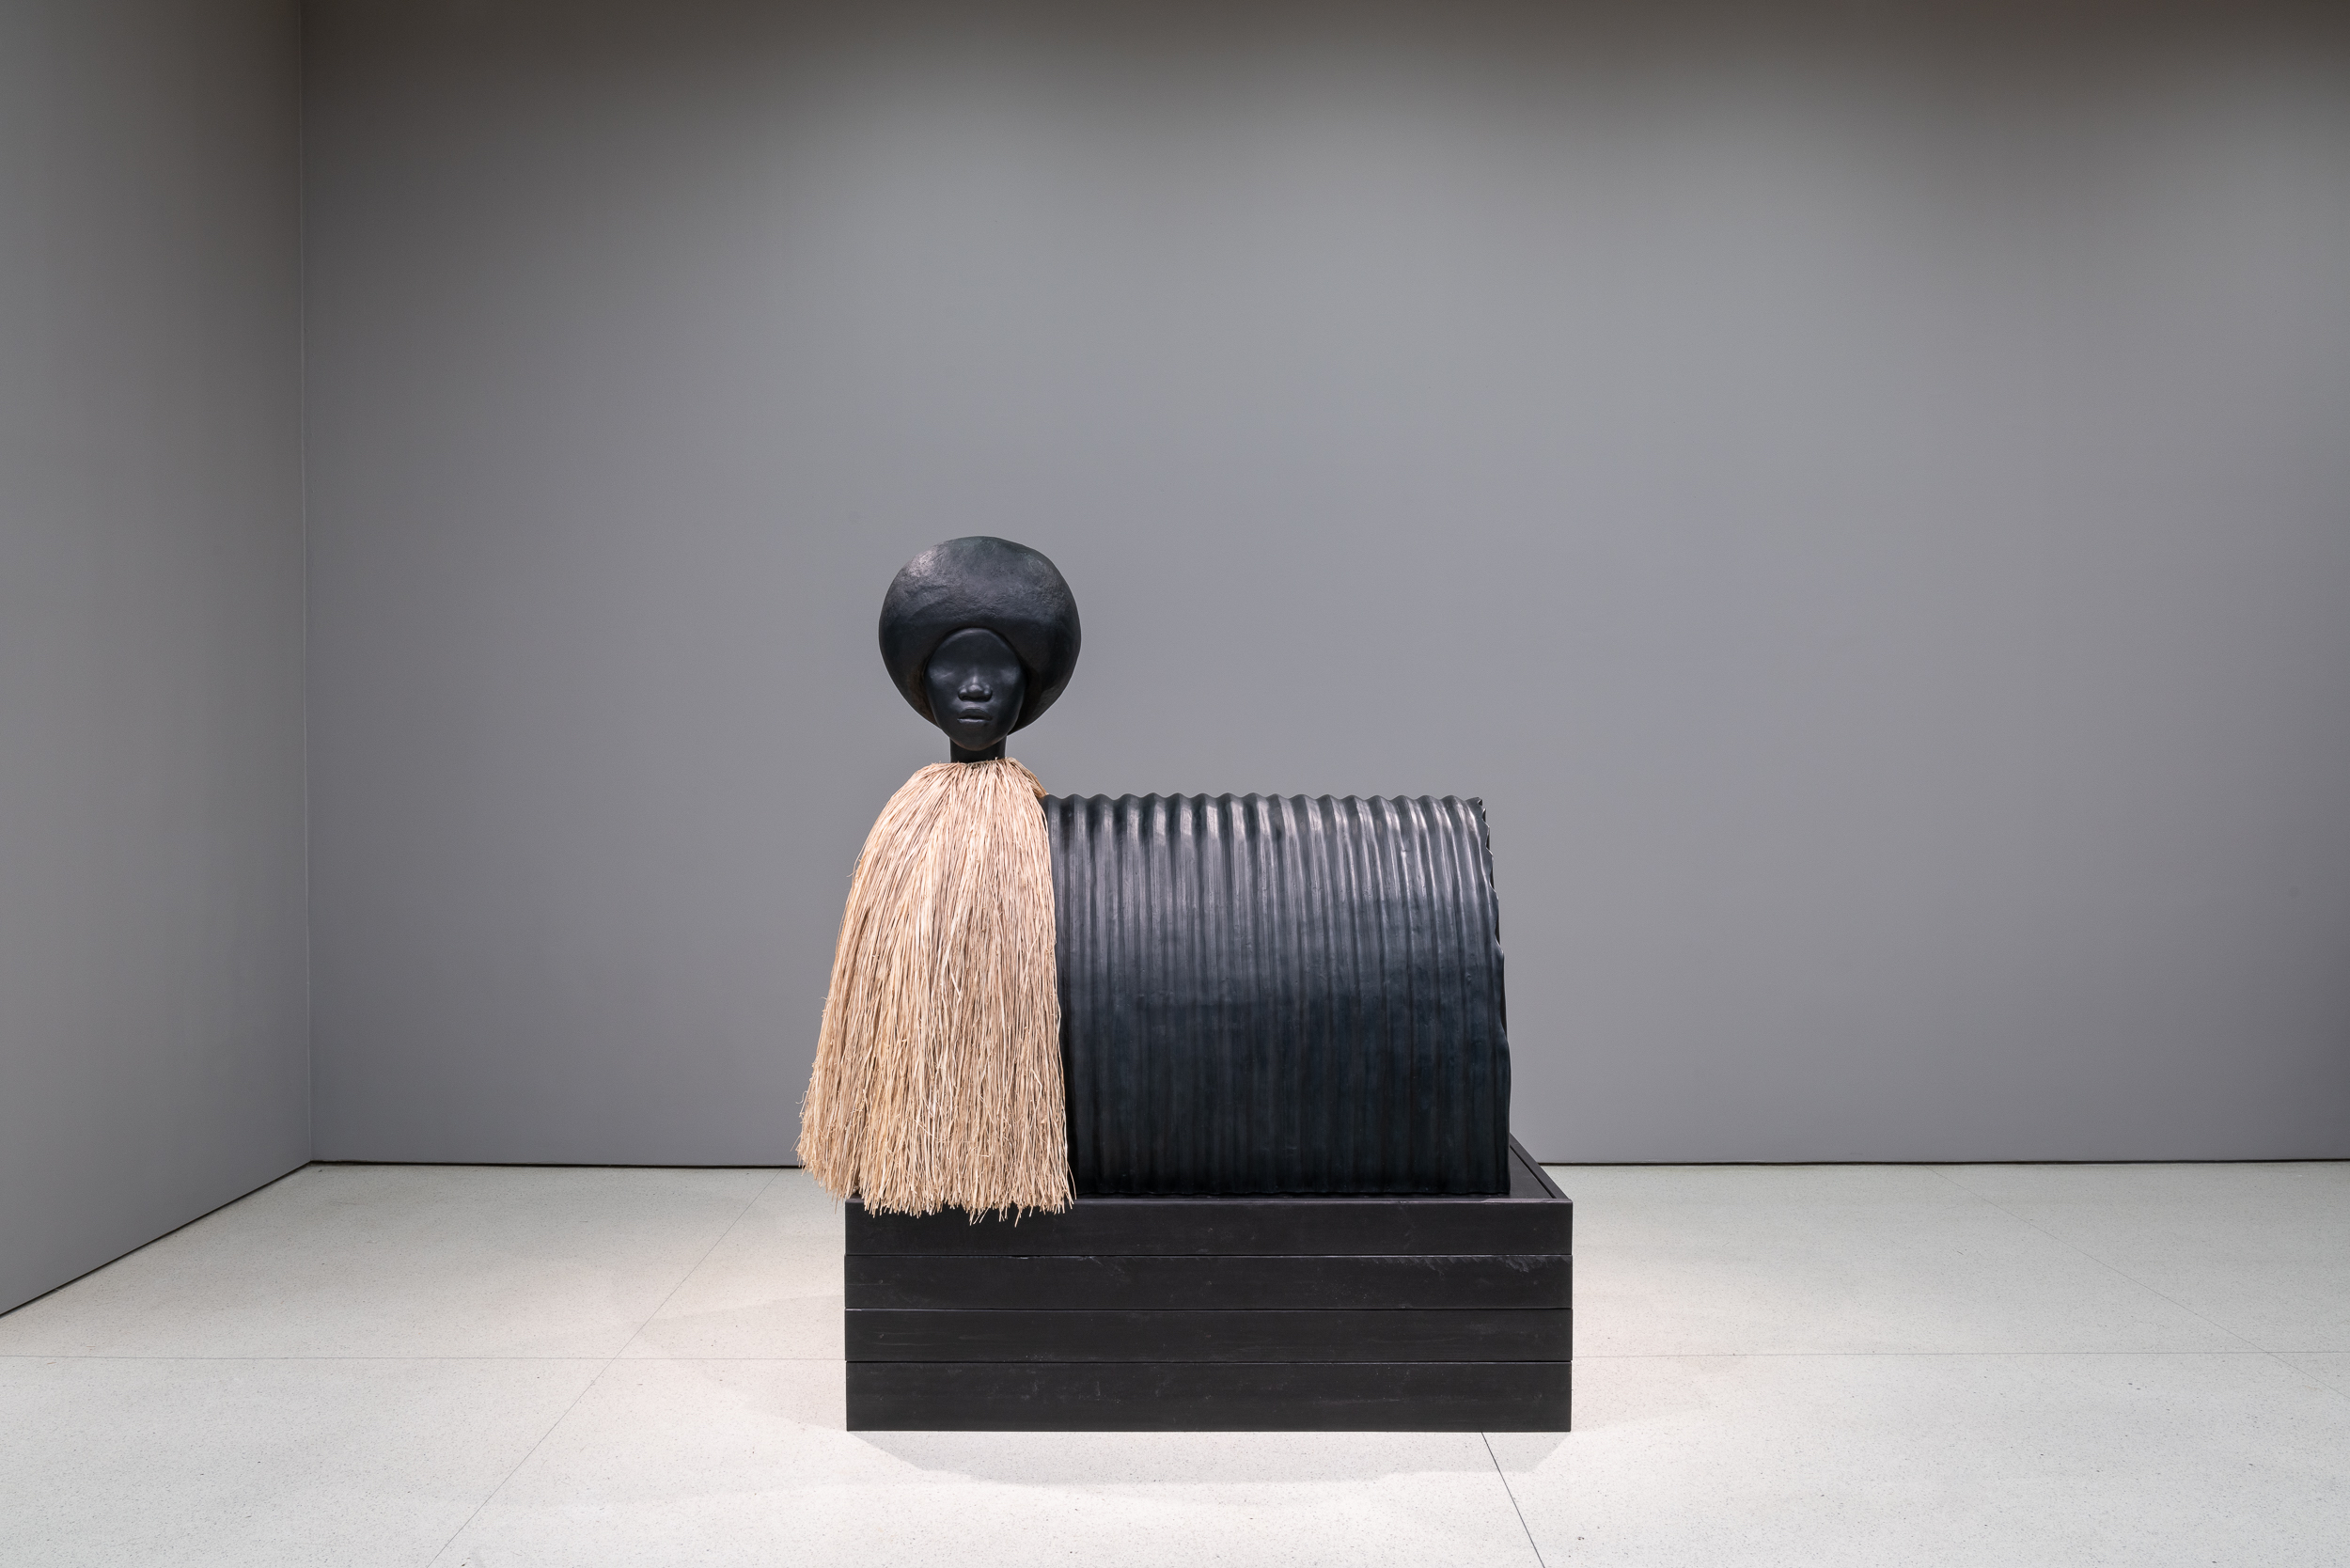 Simone Leigh  Sentinel , 2019 Bronze and raffia, 198.1 x 166.4 x 102.9 cm Courtesy the artist and Luhring Augustine, New York Installation view:  The Hugo Boss Prize 2018: Simone Leigh, Loophole of Retreat , Solomon R. Guggenheim Museum, New York, April 19–October 27,2019. Photo: David Heald © 2019 The Solomon R. Guggenheim Foundation